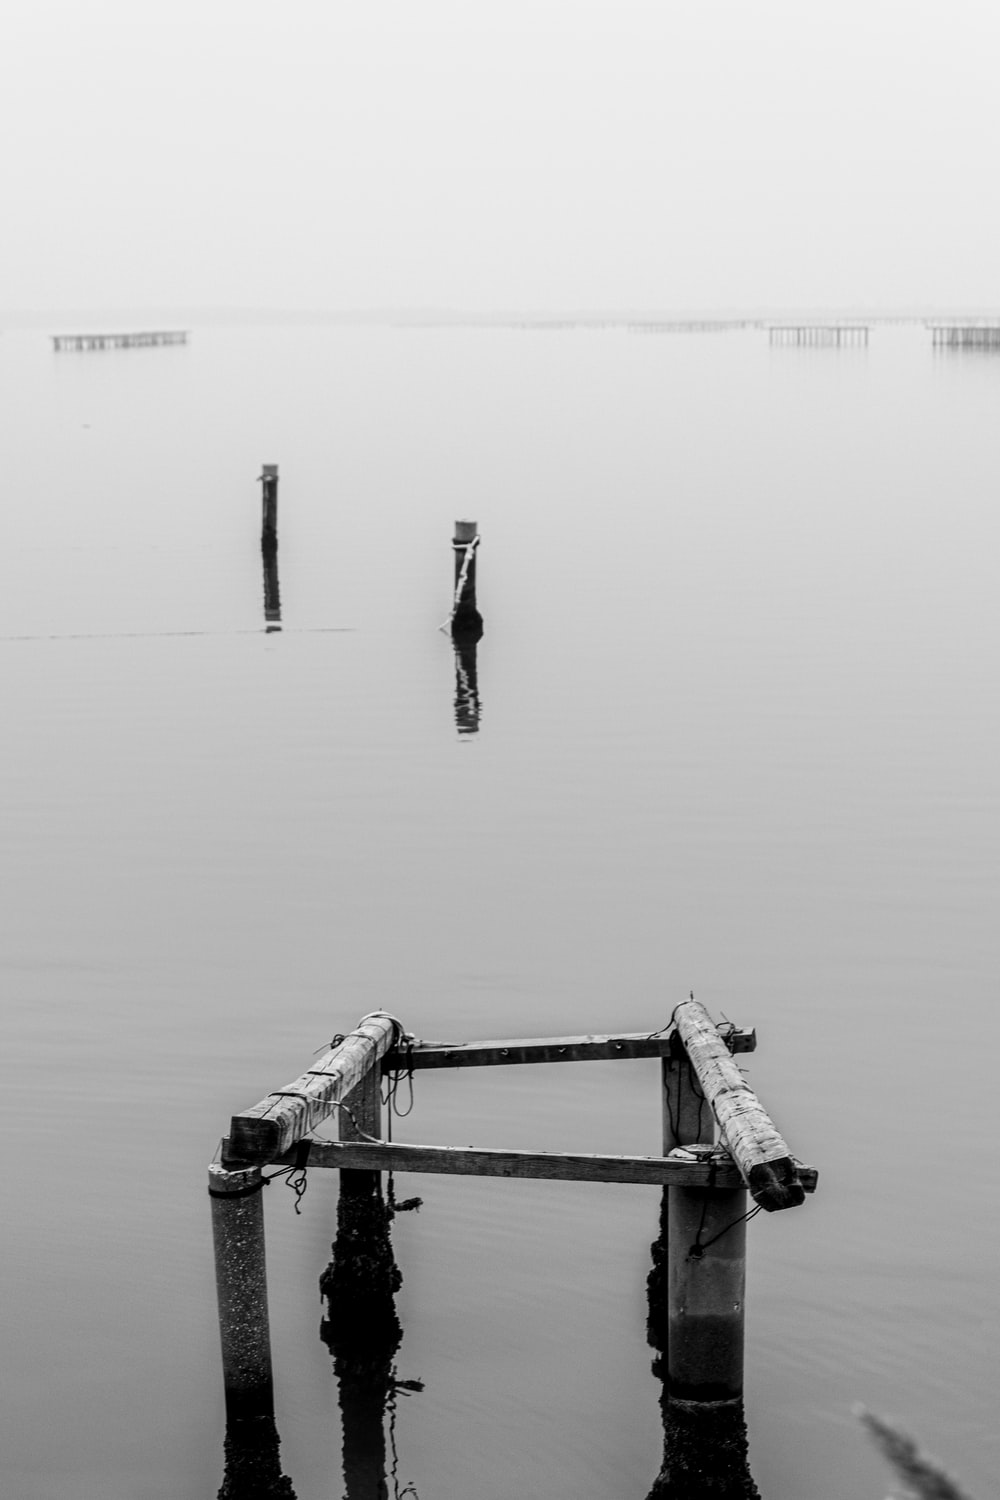 grayscale photo of a man walking on a wooden dock